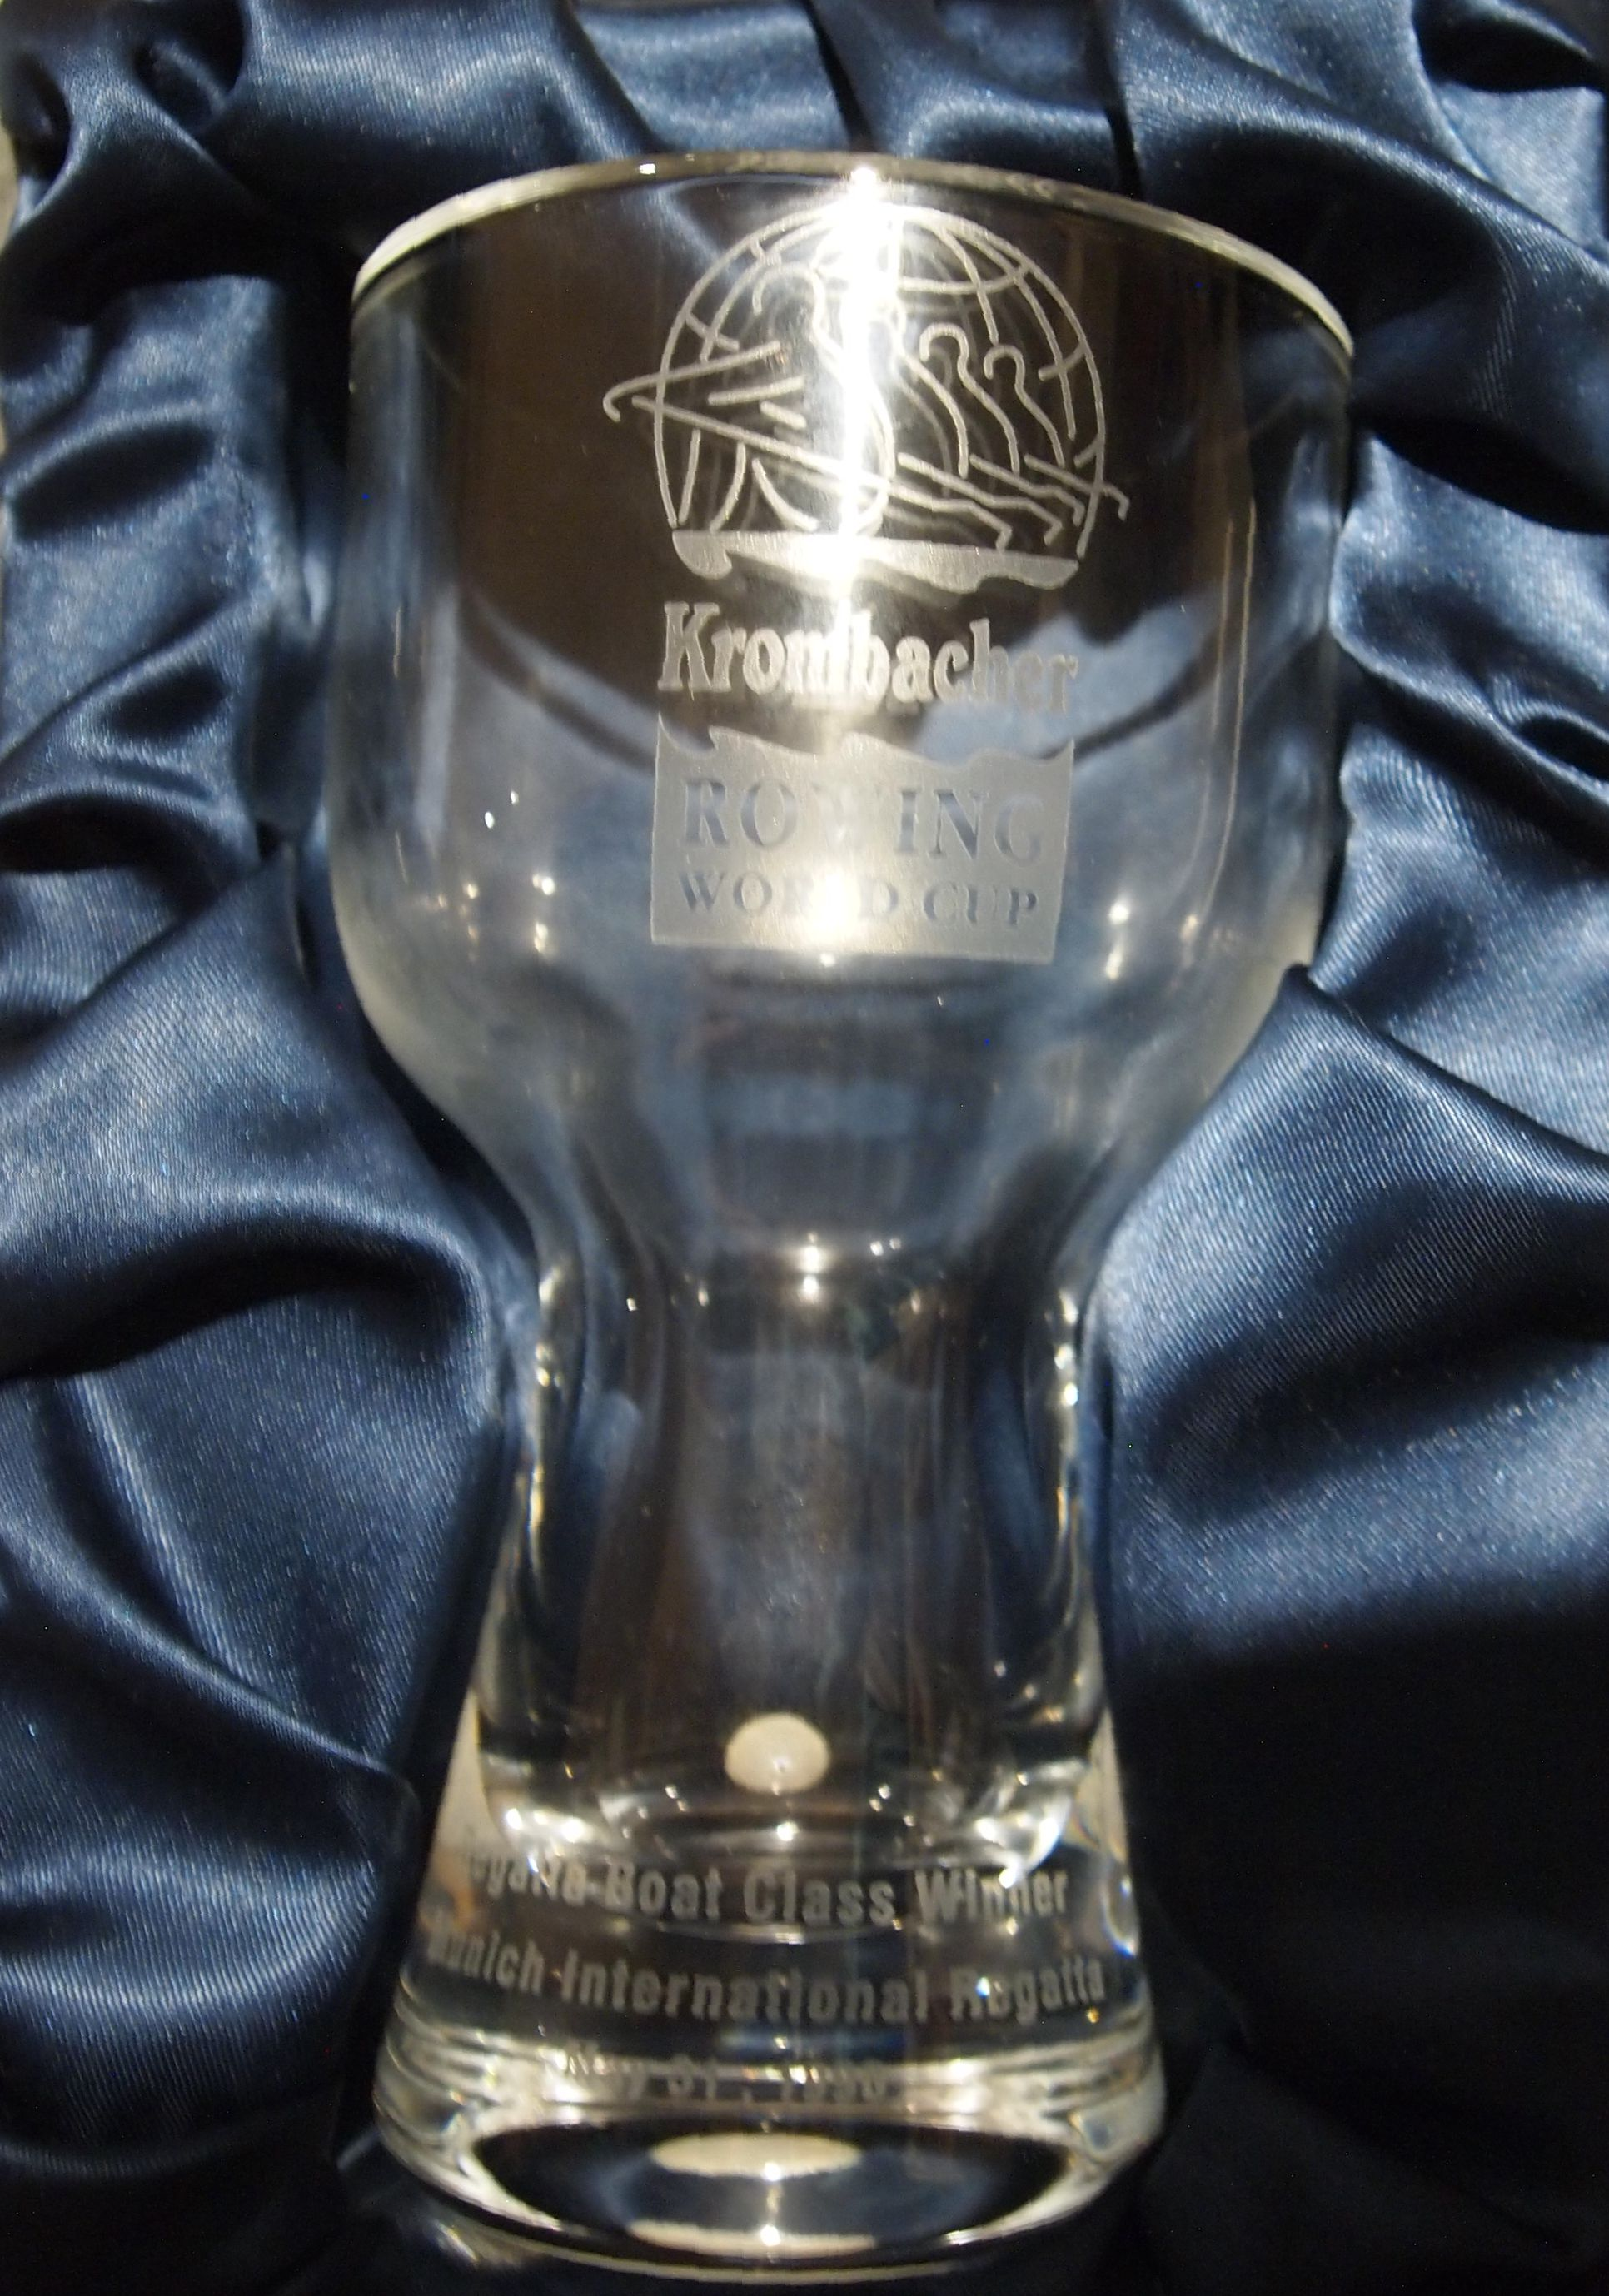 Glass vase: Krombacher Rowing World Cup